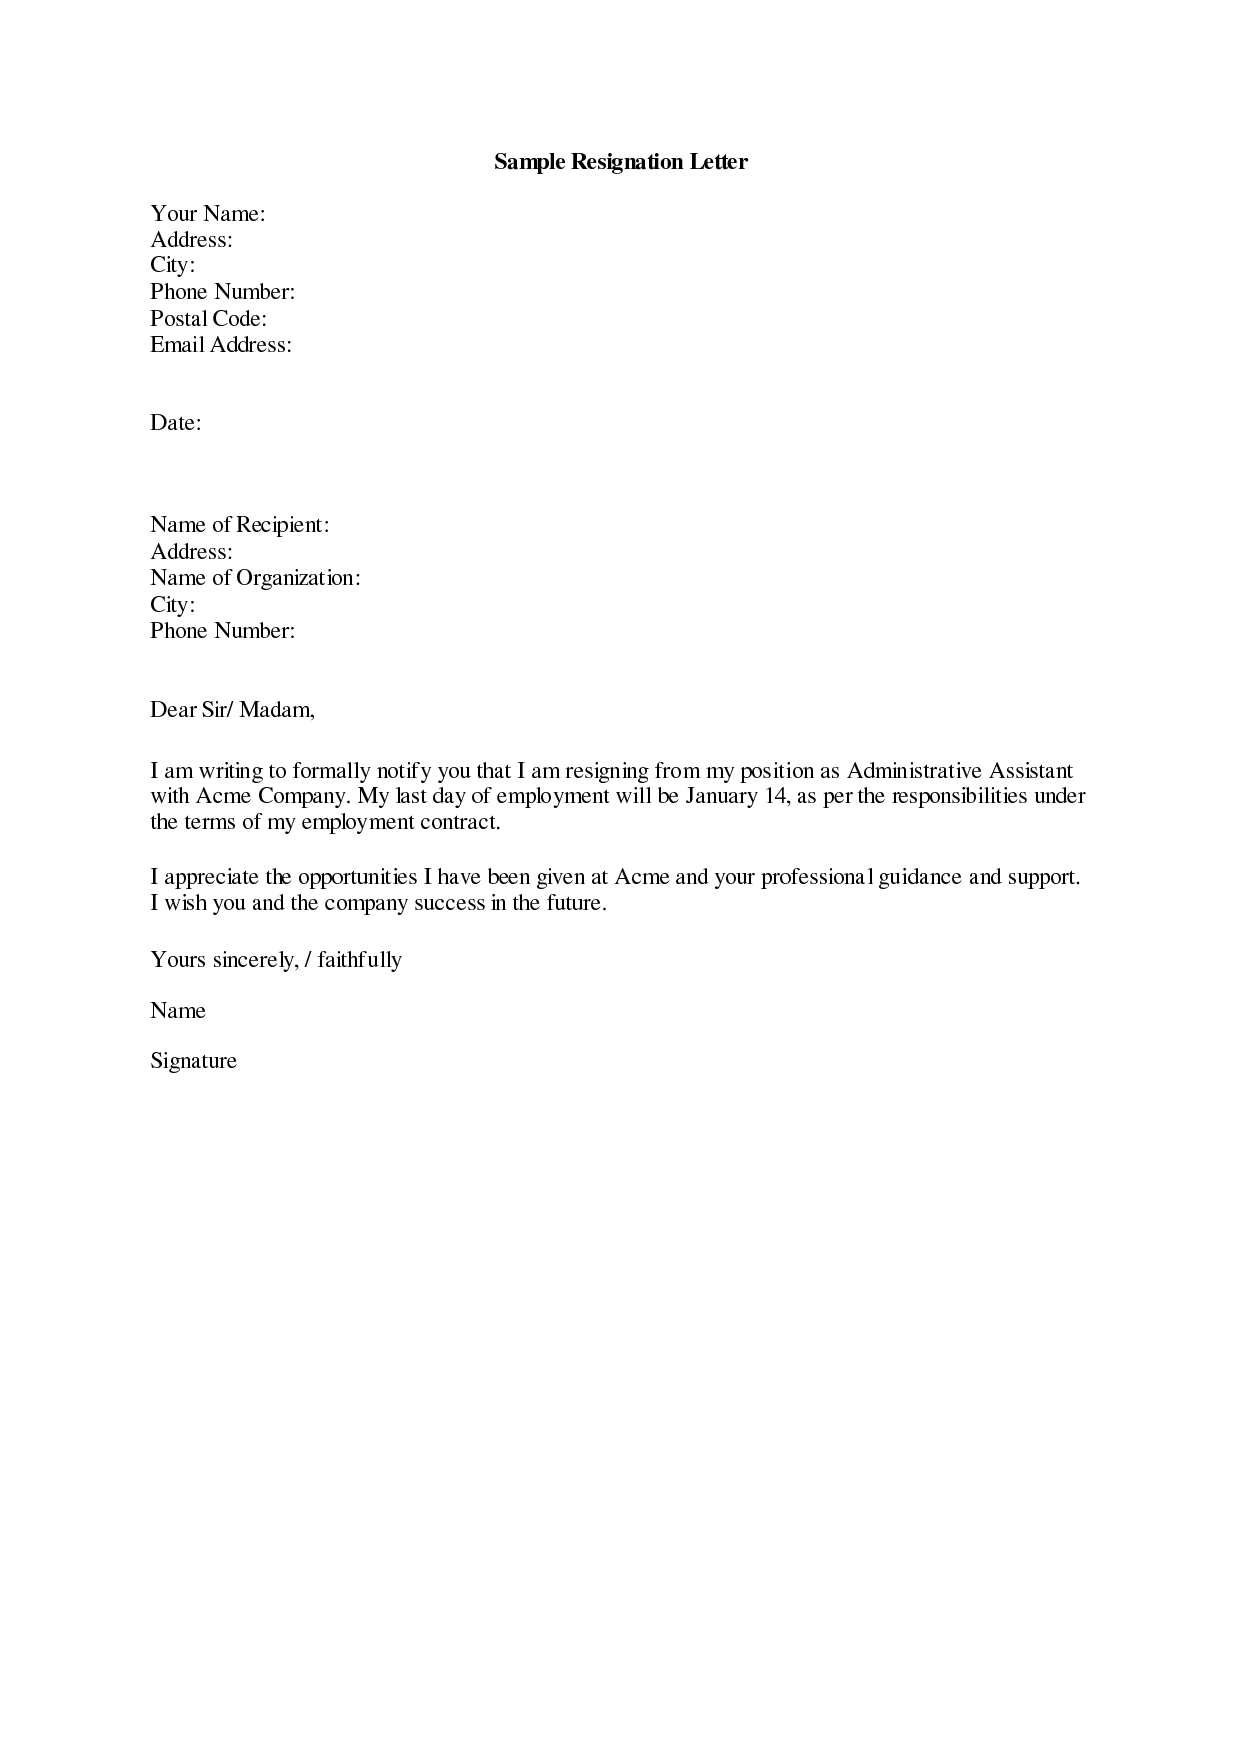 resignationlettersample19 letter of resignation ankit